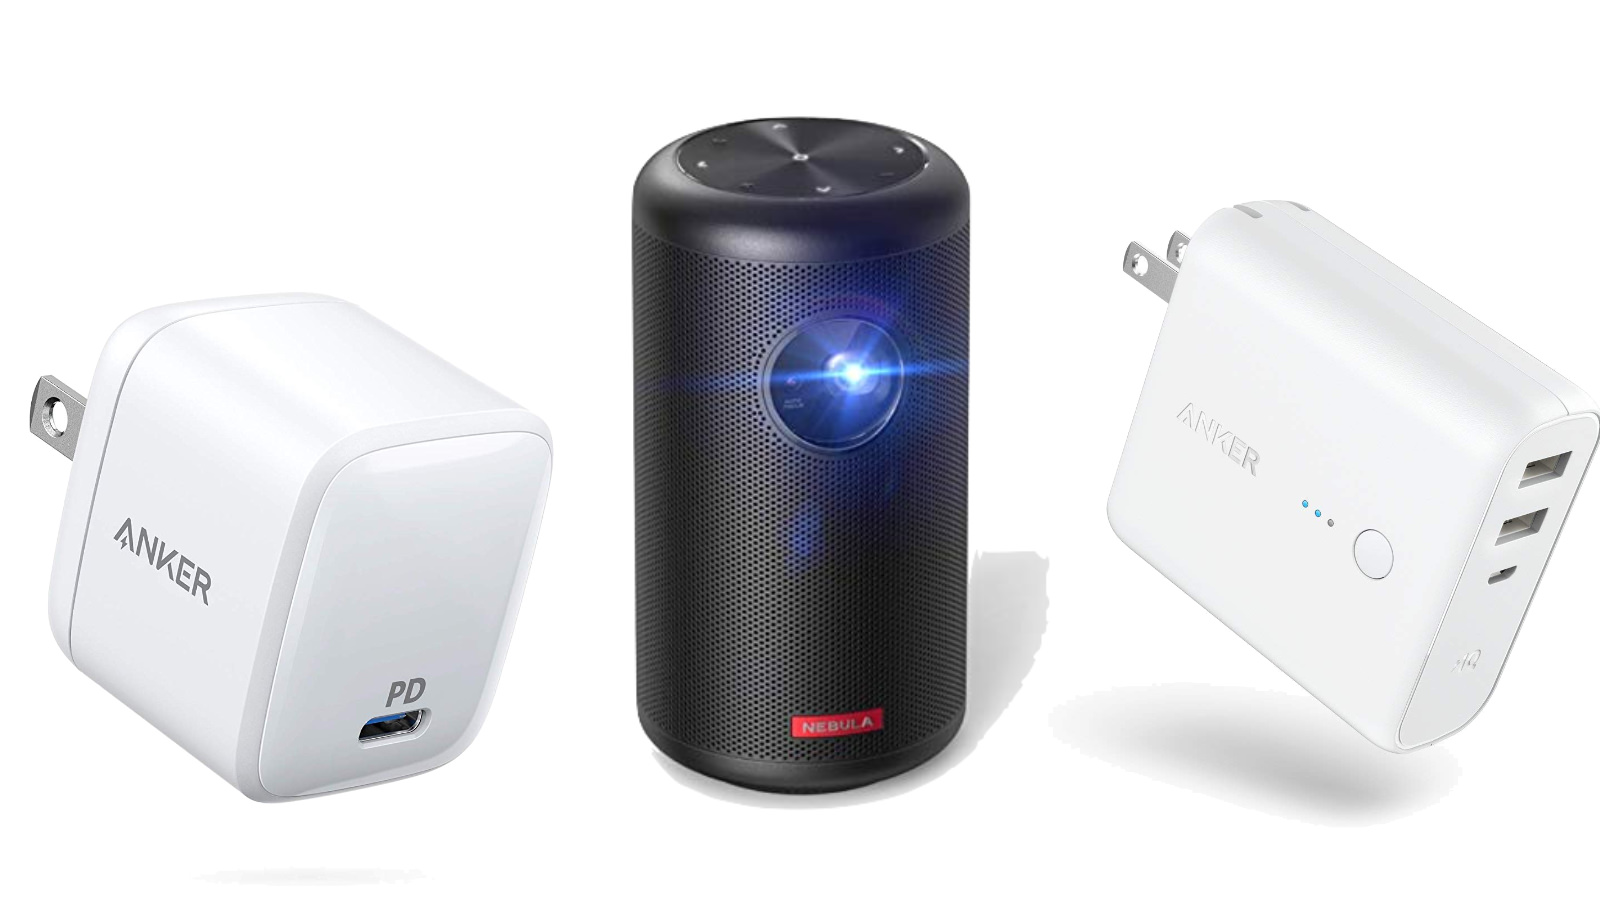 Anker-Products-on-sale.jpg